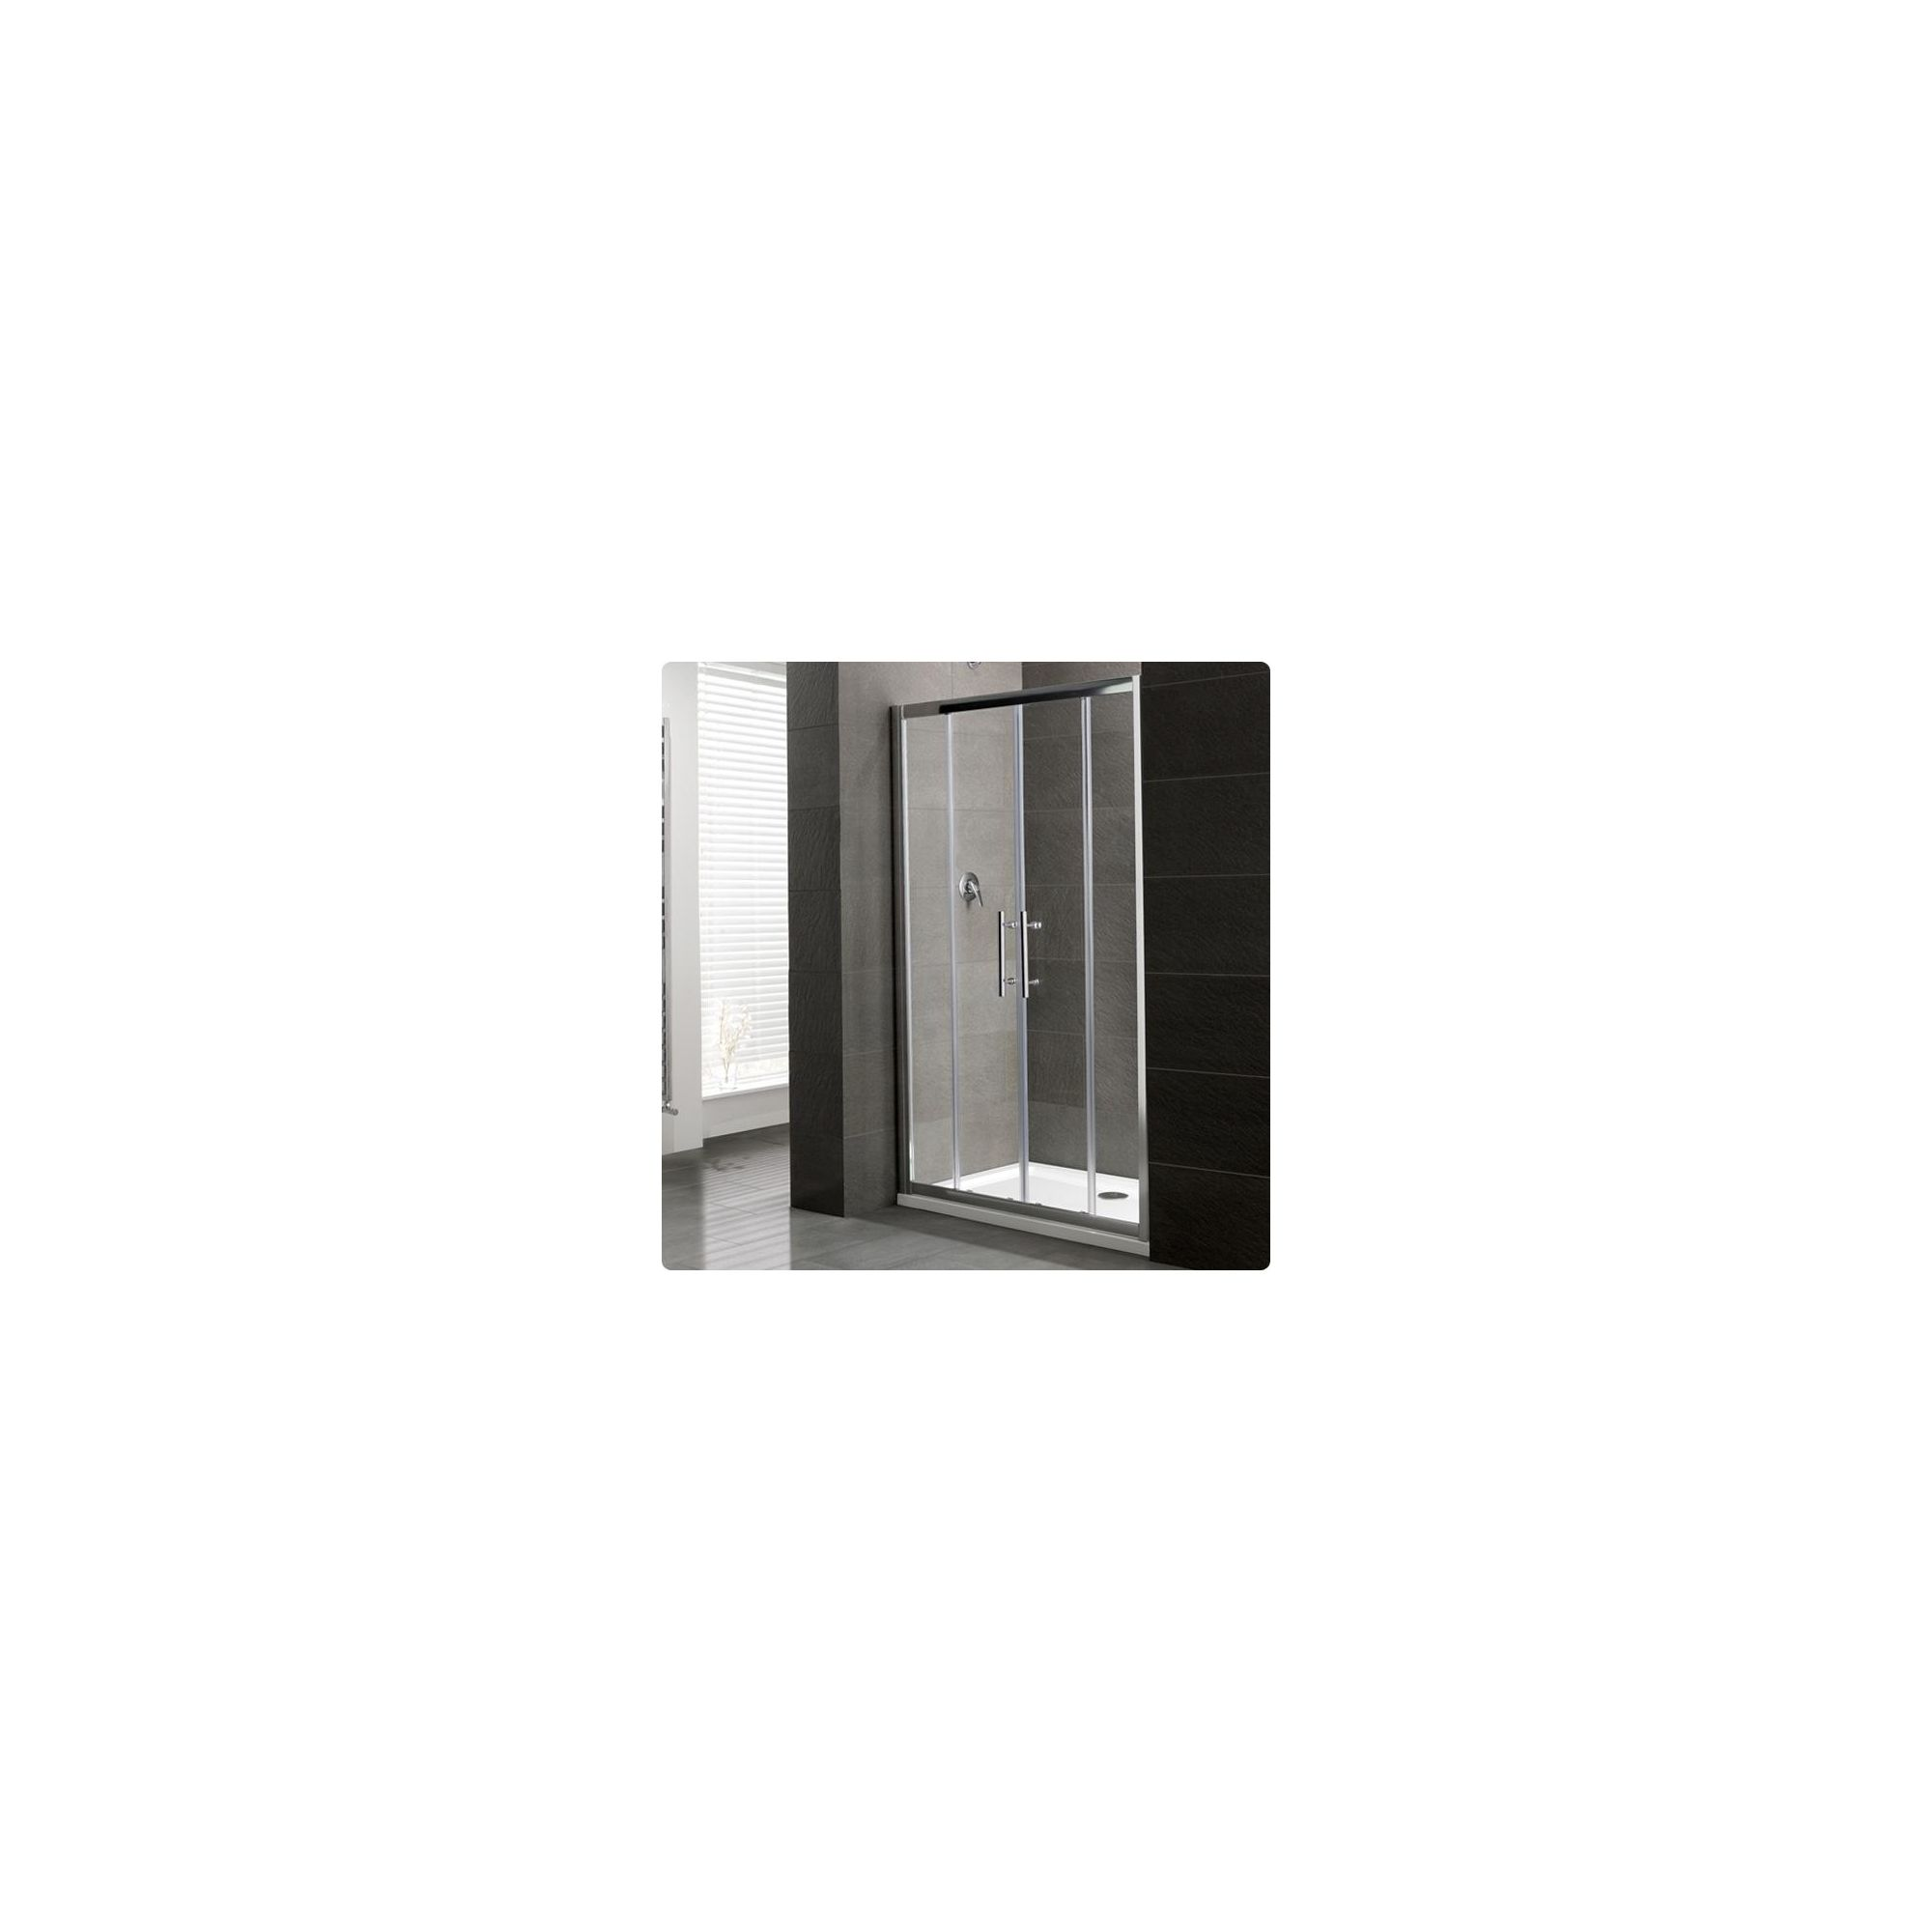 Duchy Select Silver Double Sliding Door Shower Enclosure, 1600mm x 900mm, Standard Tray, 6mm Glass at Tesco Direct